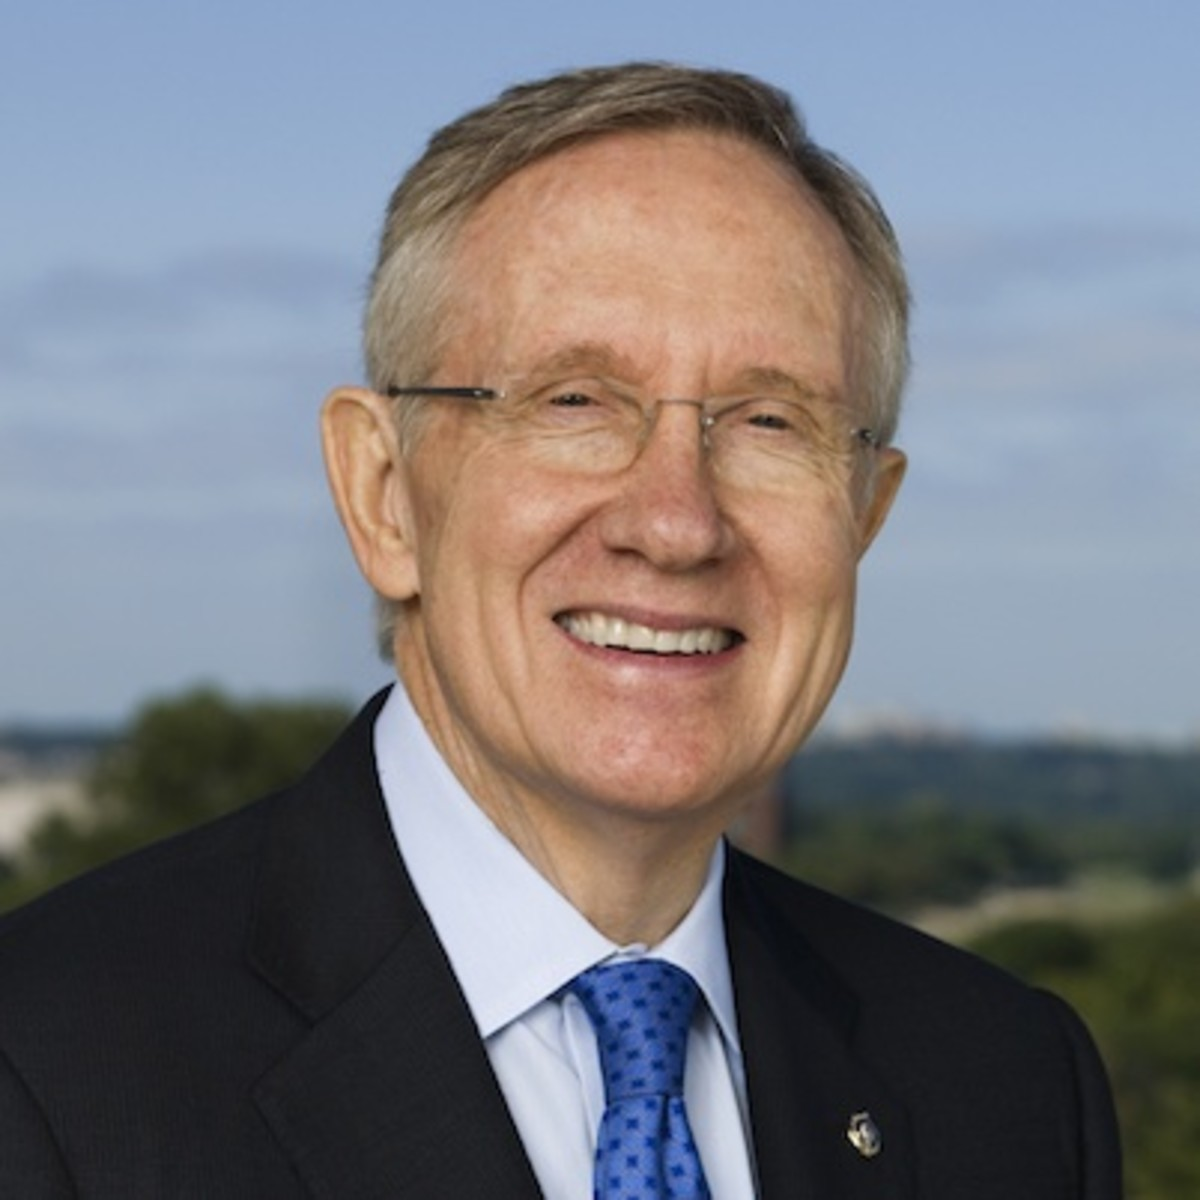 Harry Reid, former Democratic Senator from Nevada, who pushed for funding of the Advanced Aerospace Threat Identification Program while he was Senate majority leader.